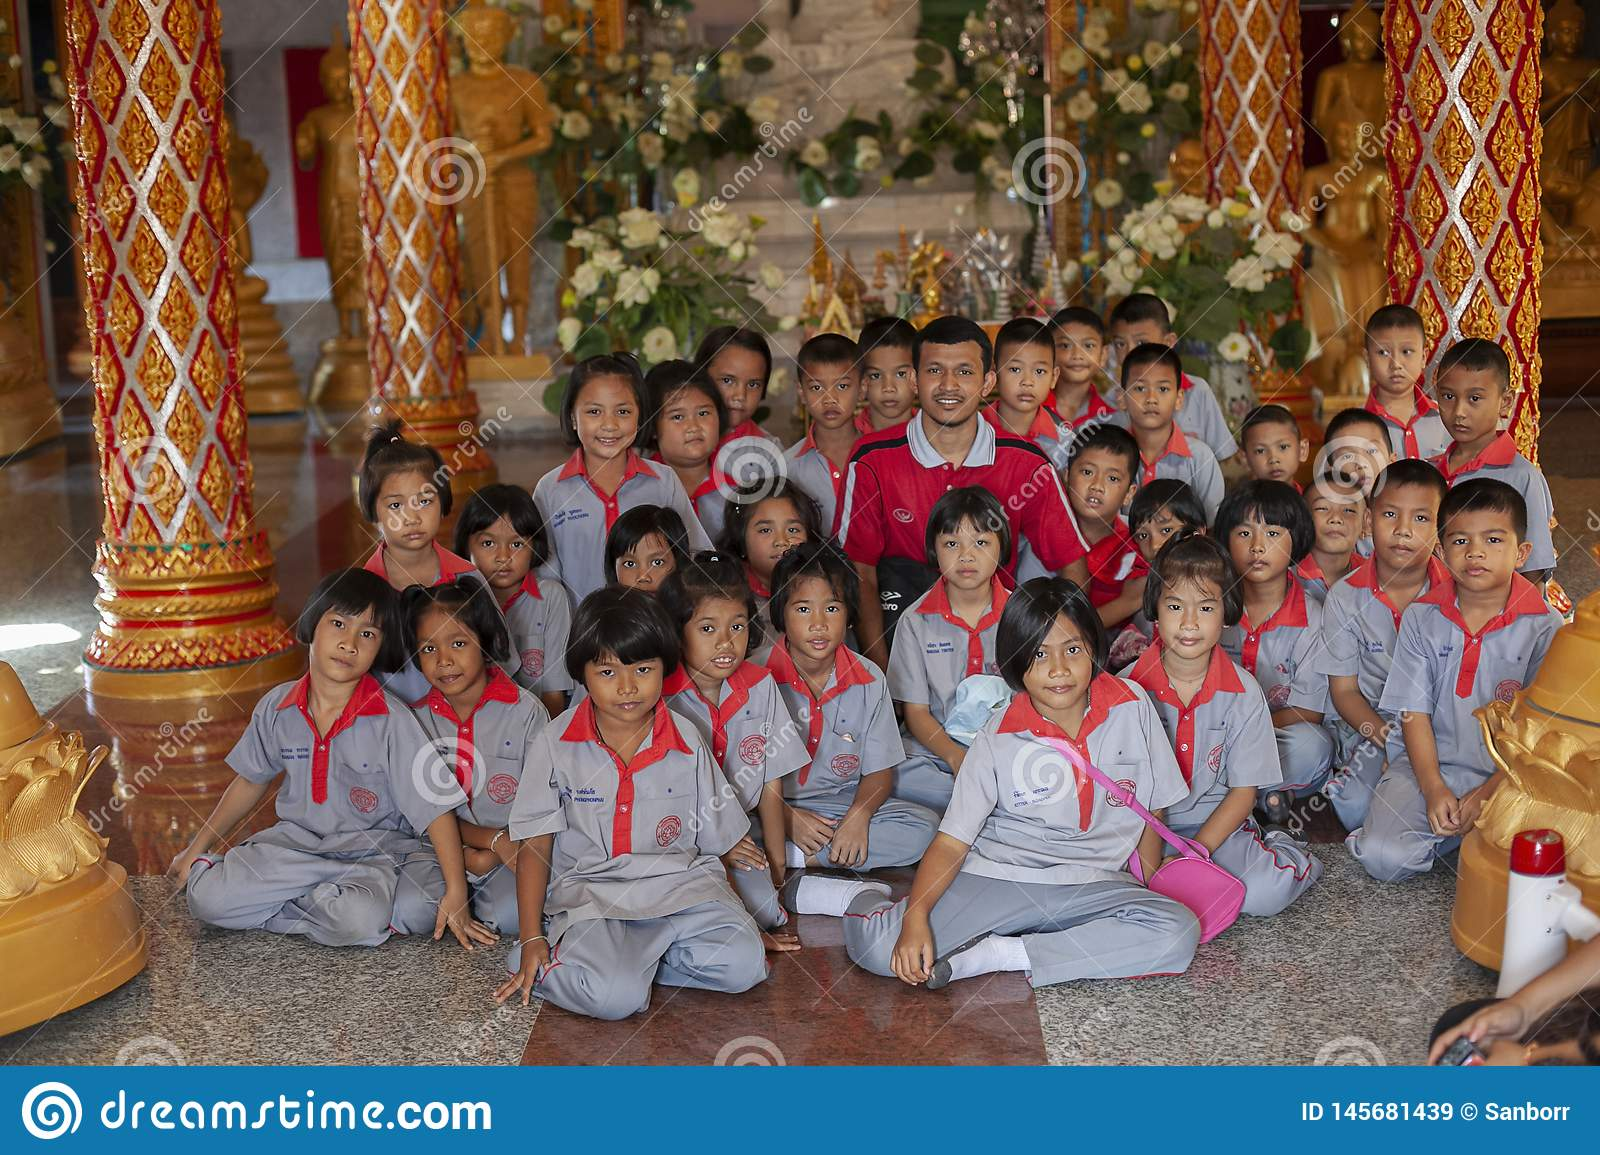 Thailand, Phuket, 01.18.2013. Elementary school students and a teacher in the Buddha temple, group photo. Education. Training.